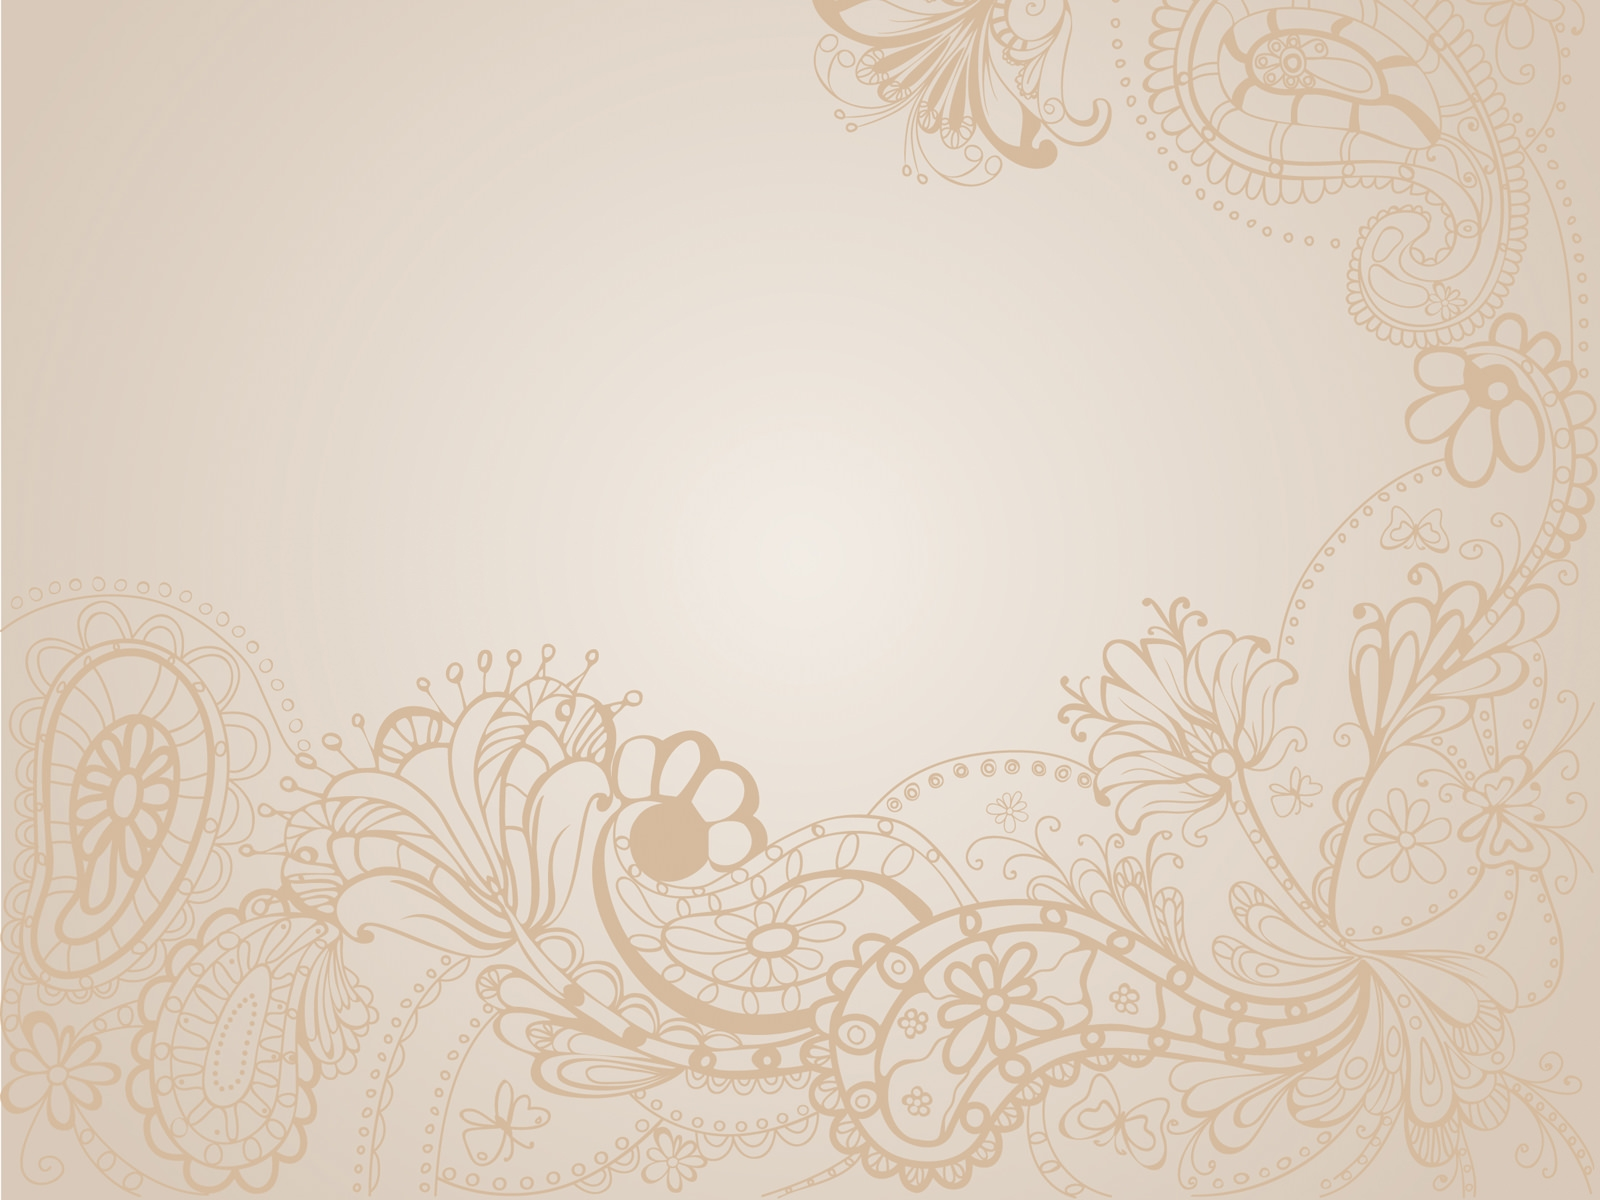 Vintage Wedding Backgrounds | FreeCreatives